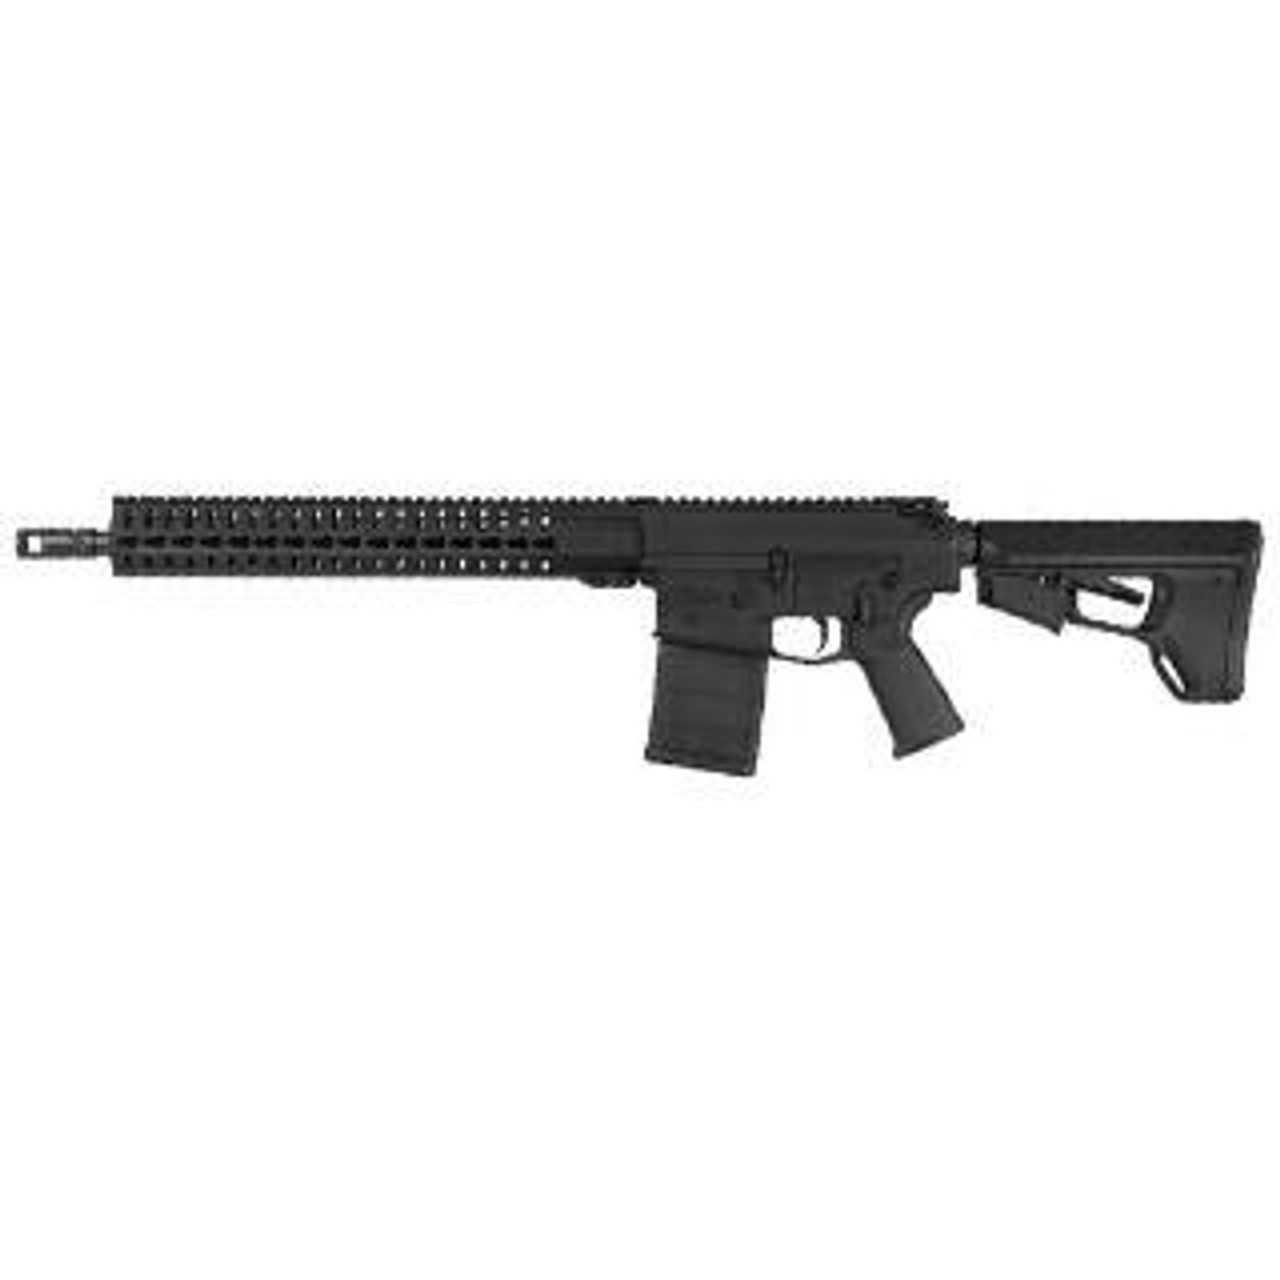 CMMG MK3 3 CBR CALIFORNIA LEGAL .308